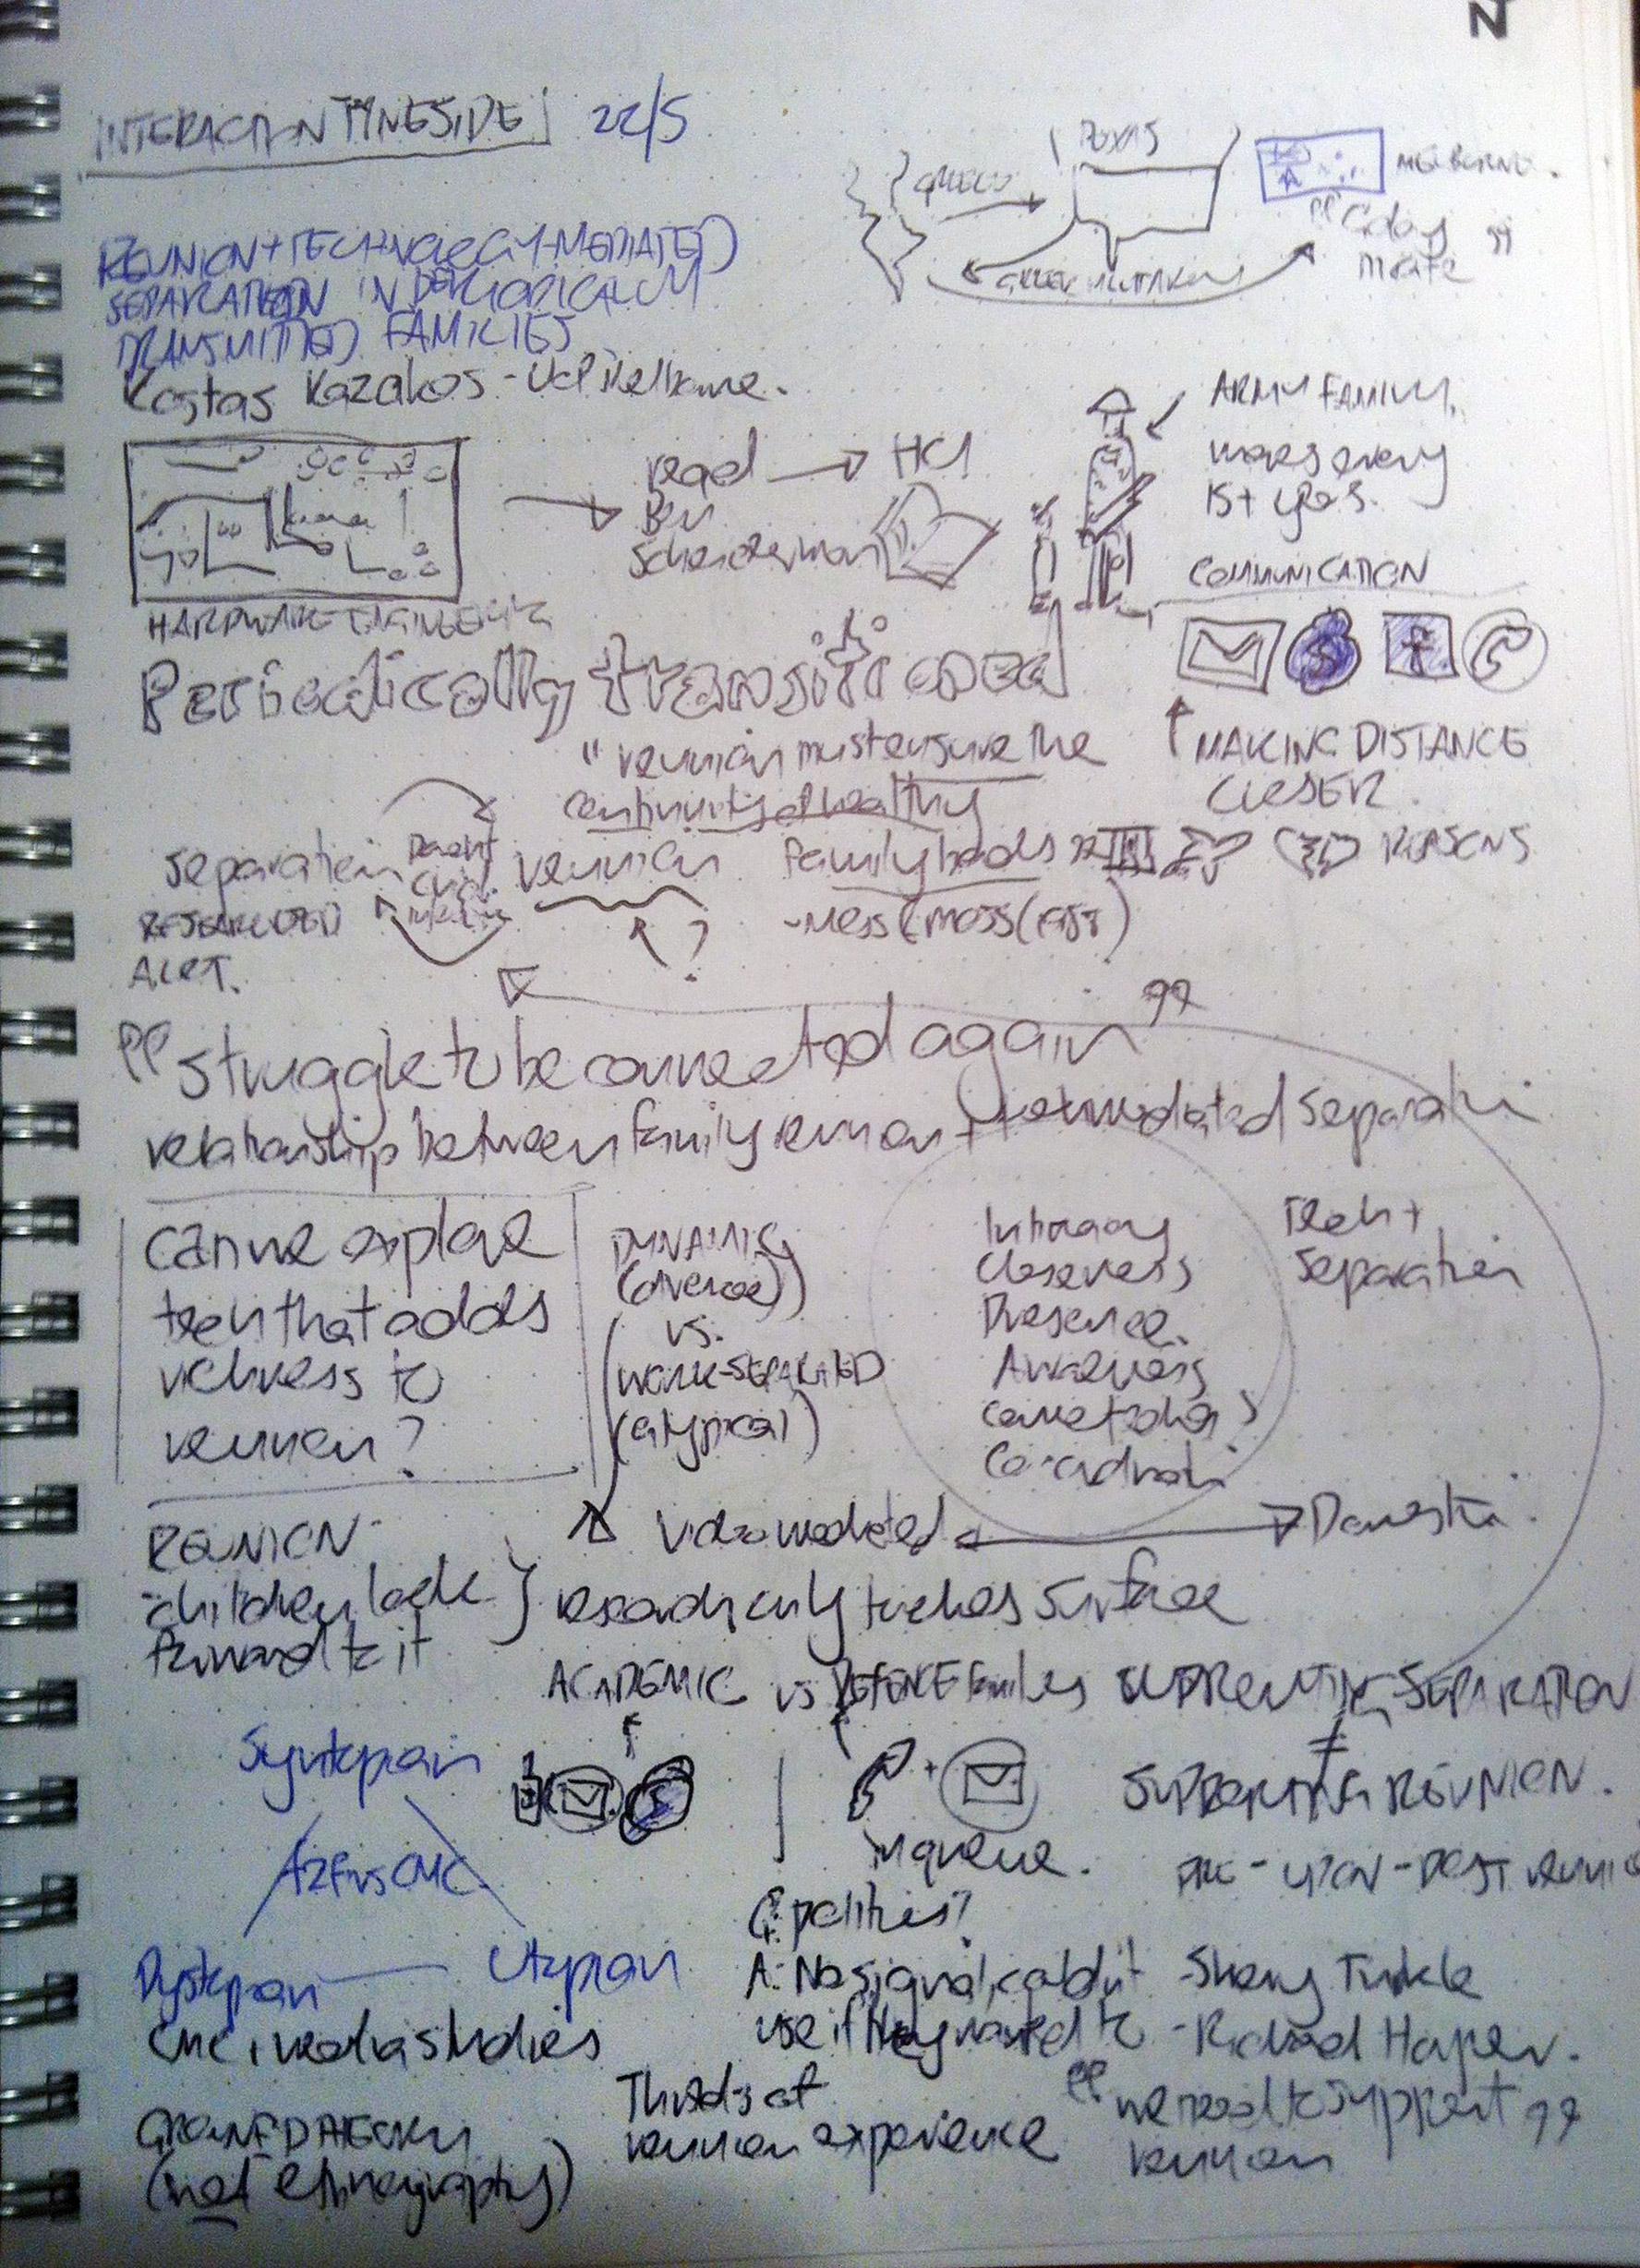 Notes from Kostas' talk